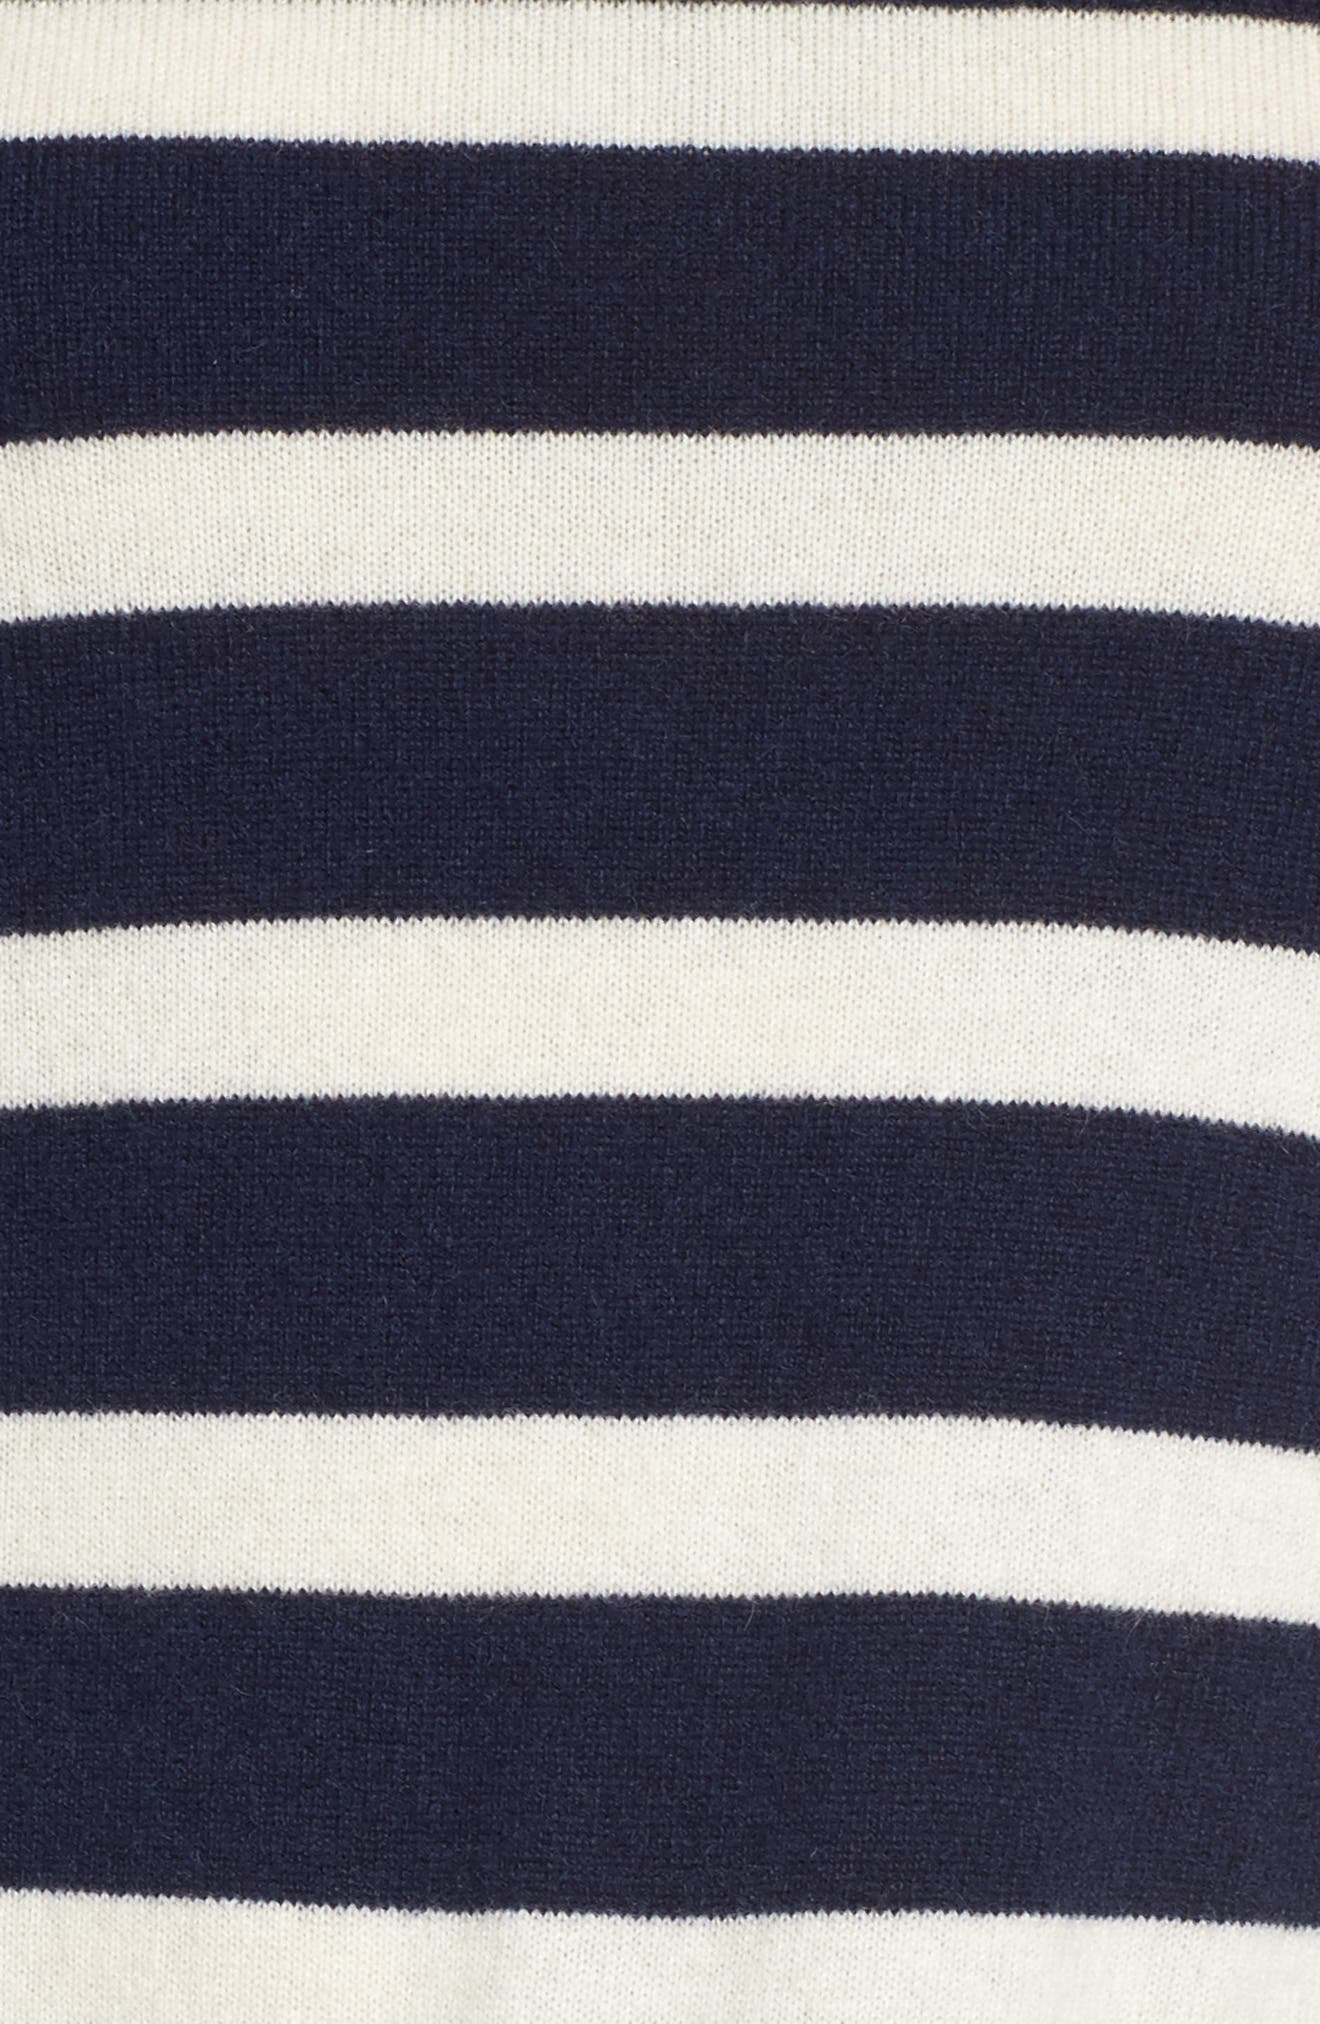 Ruffle Stripe Cashmere Sweater,                             Alternate thumbnail 5, color,                             Navy- Ivory Wide Stripe